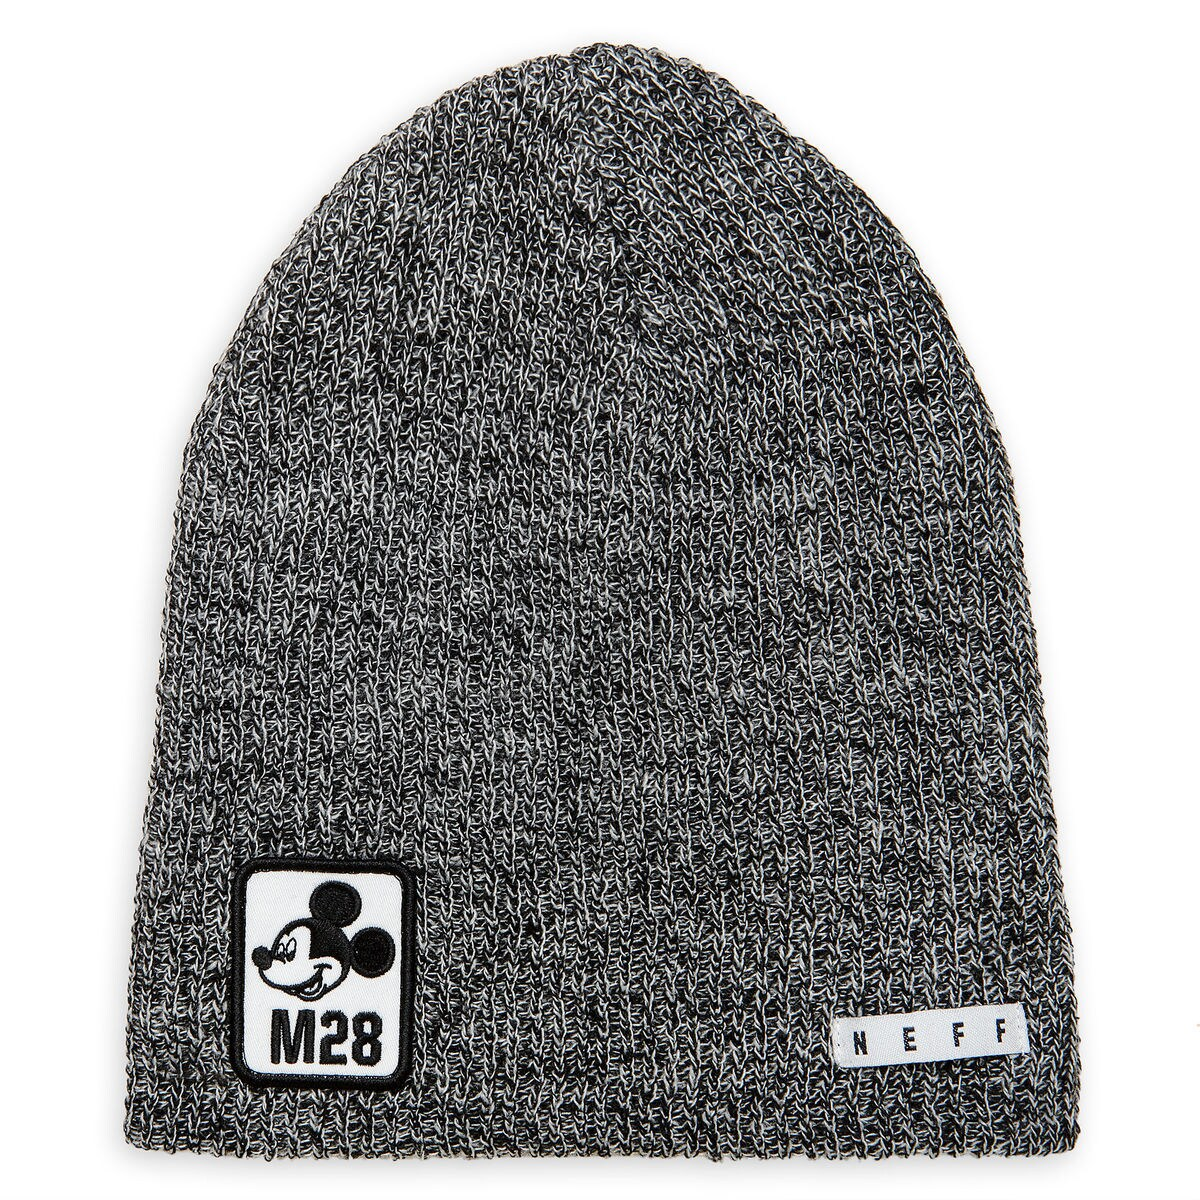 b147a1b192d Product Image of Mickey Mouse Beanie for Adults by Neff - Gray   1